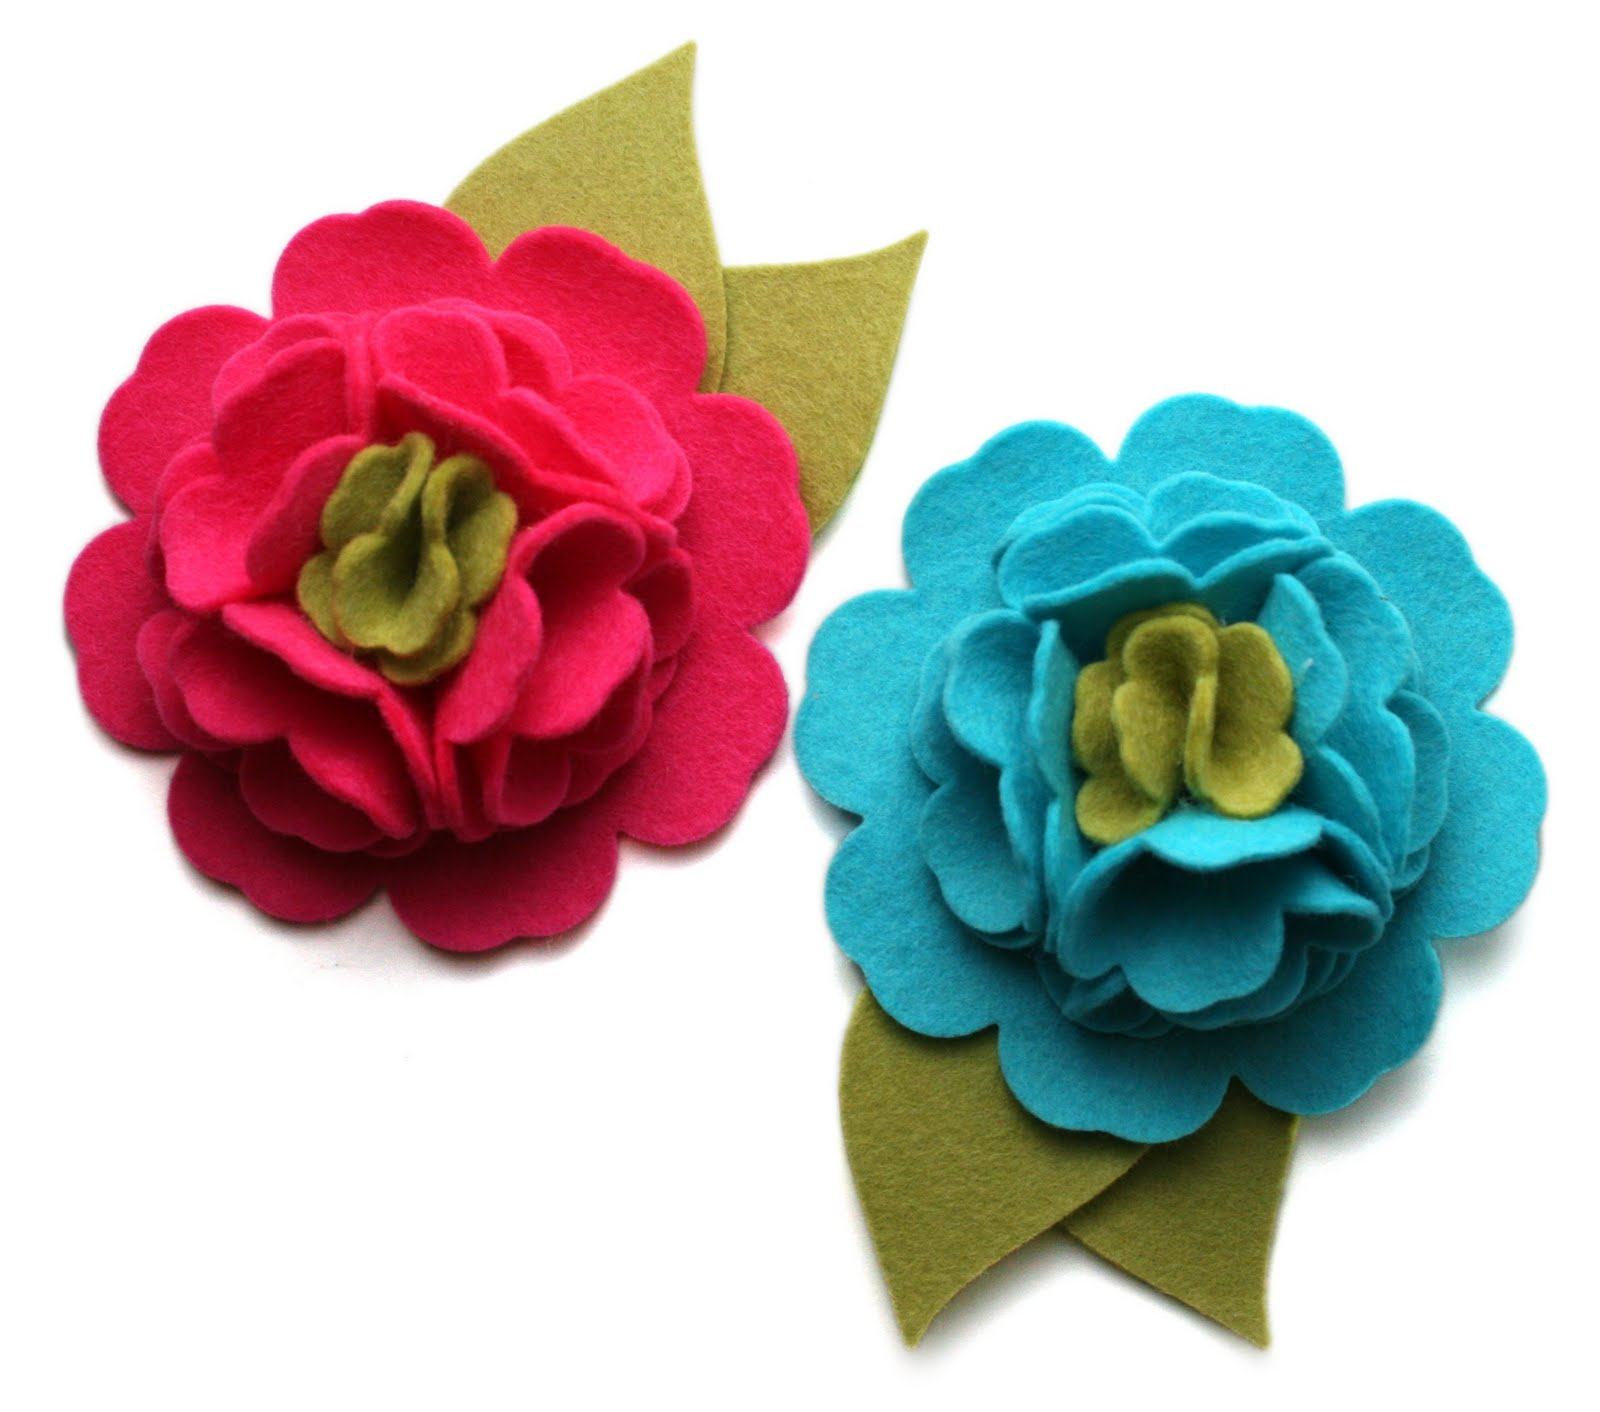 Sprinkled With Glitter Nesting Blossoms Felt Flower Tutorial